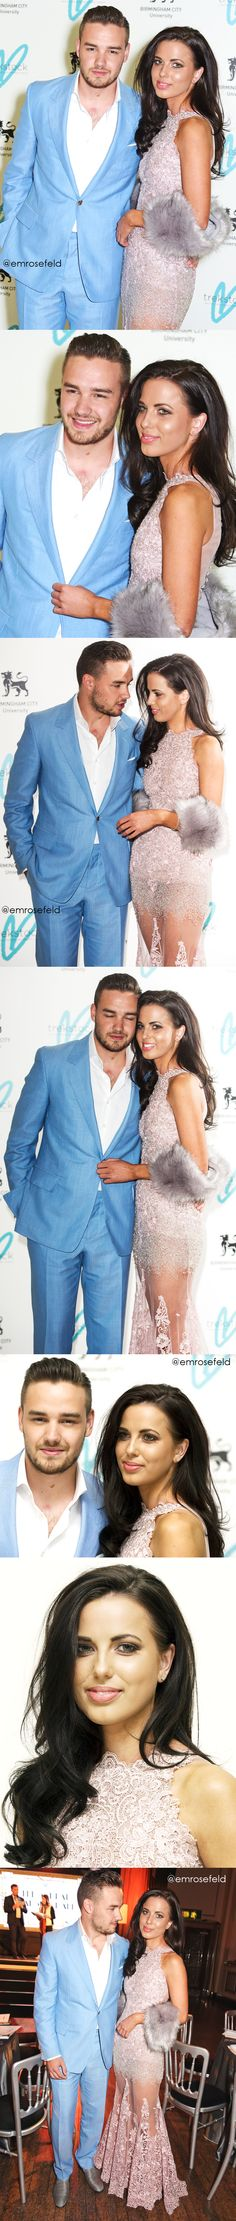 Liam Payne + Sophia Smith